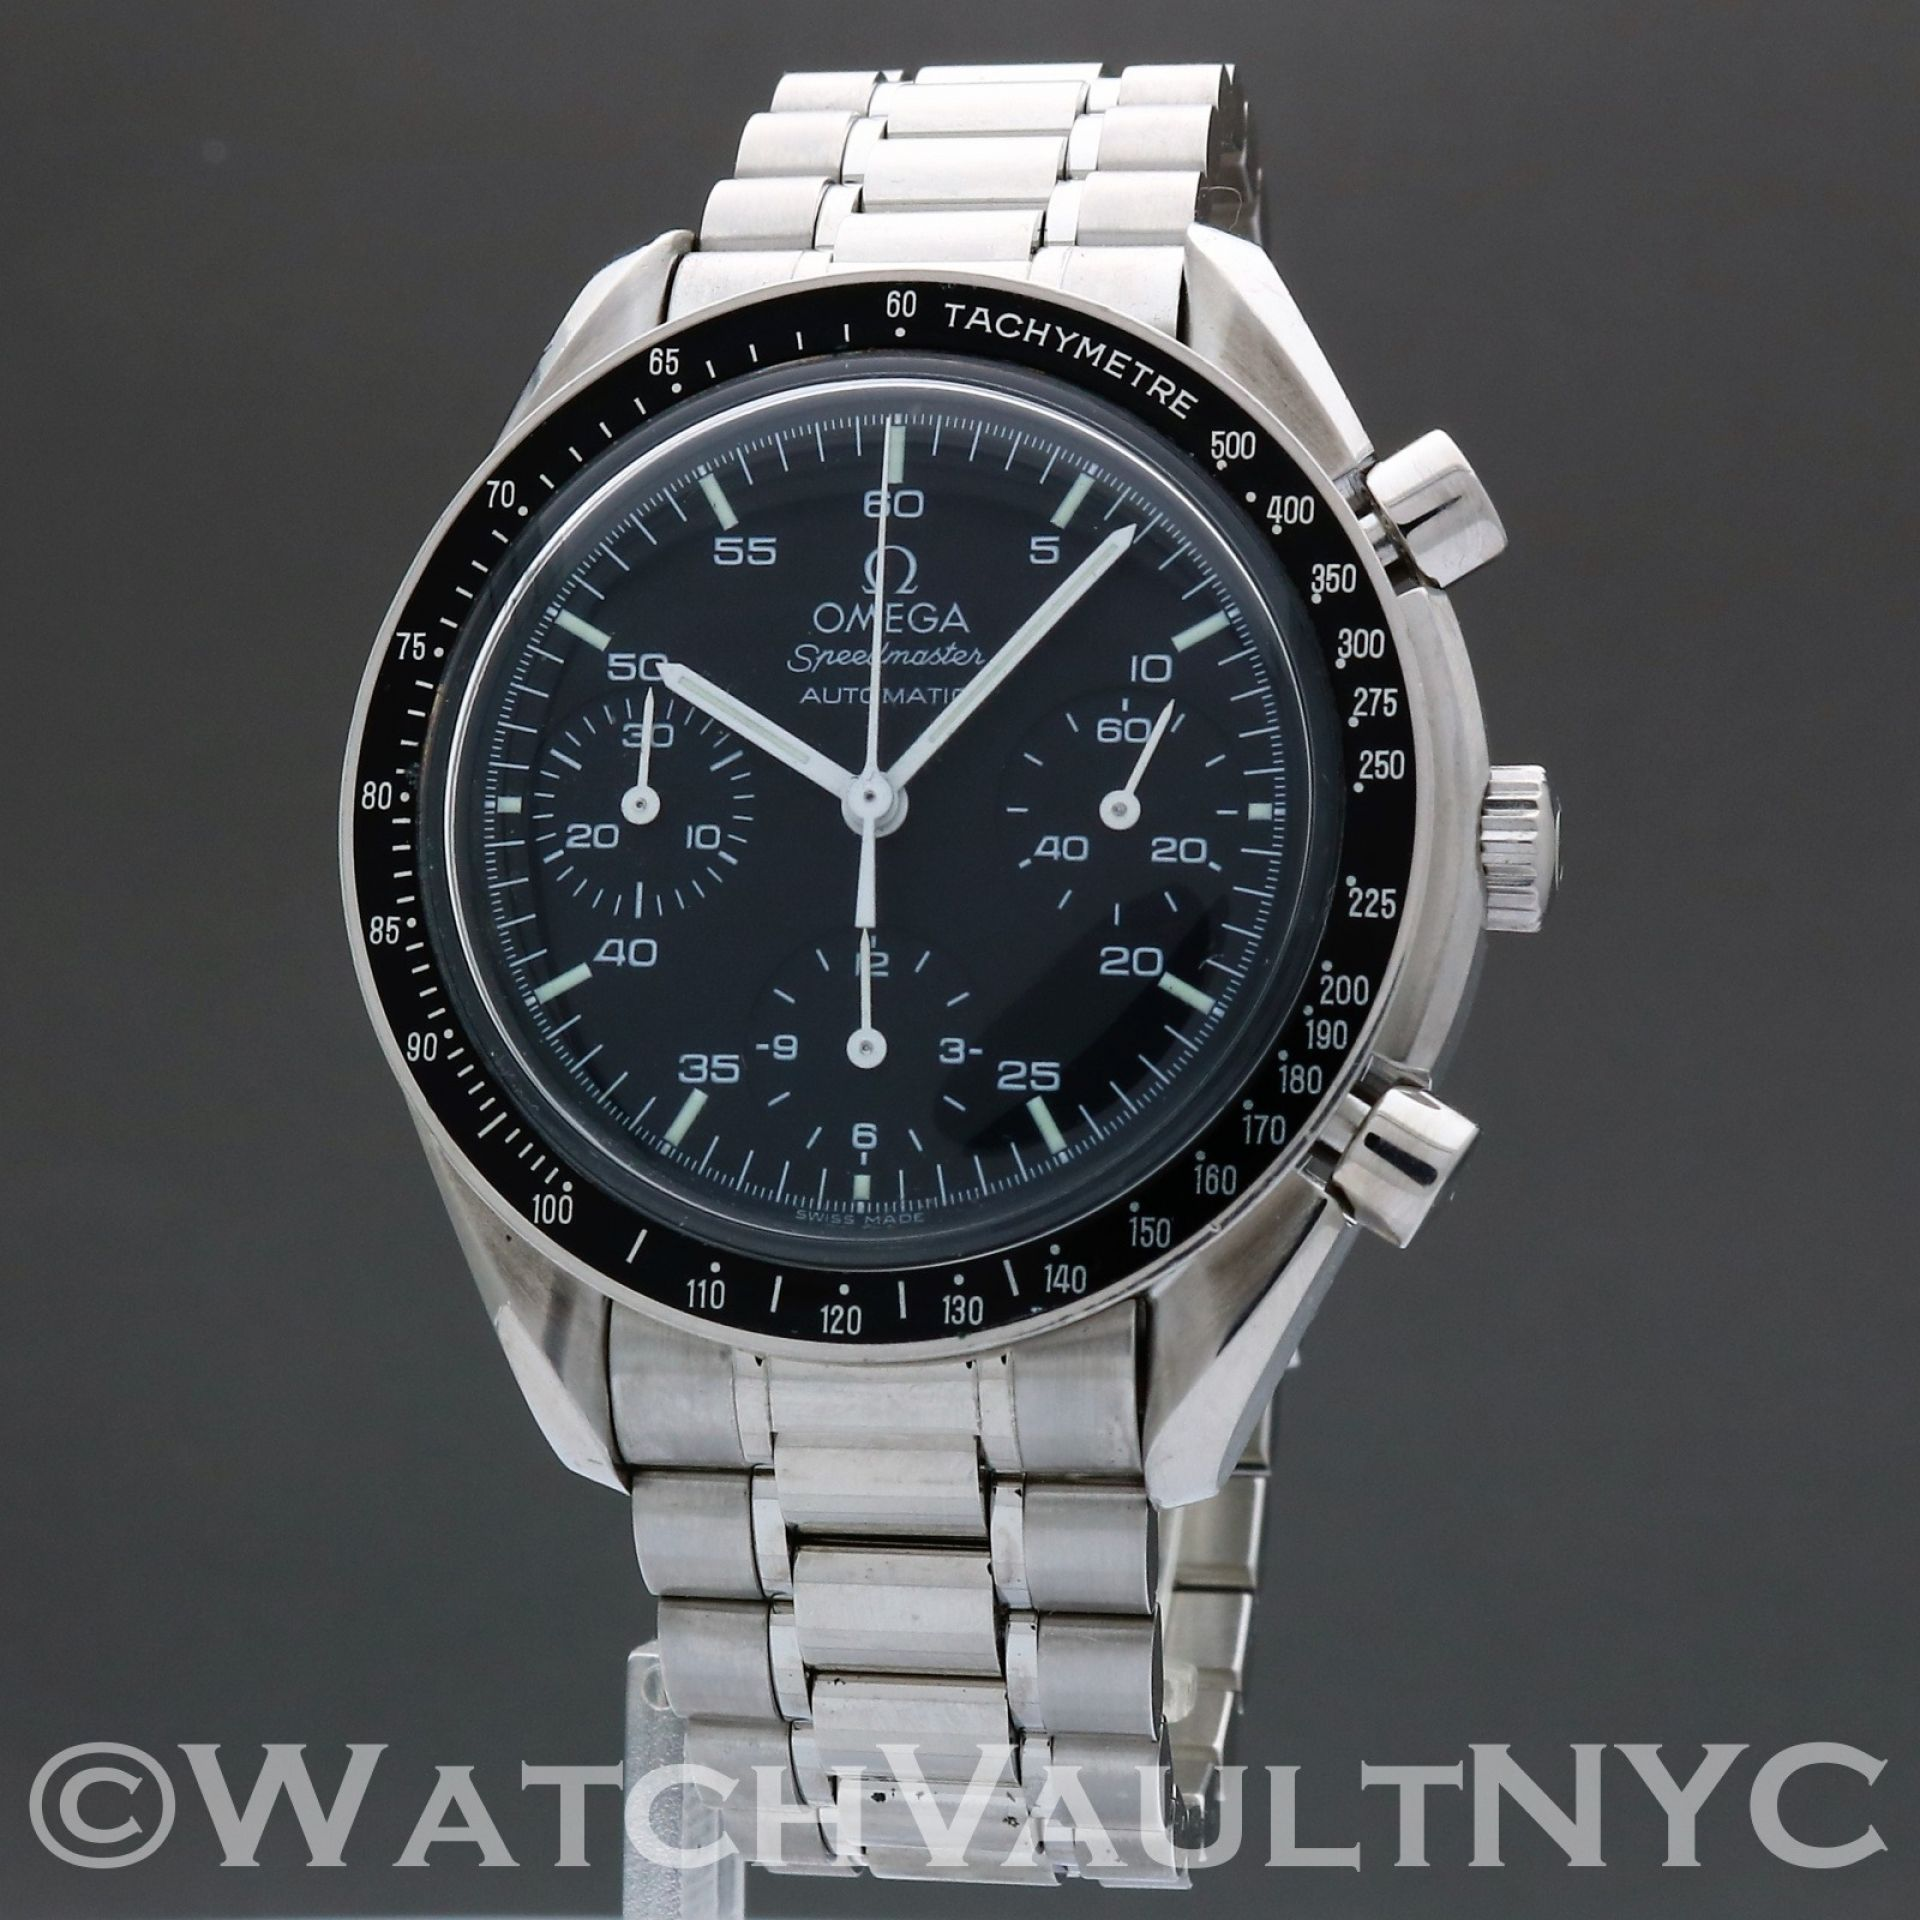 Omega Speedmaster Reduced 3510.50 39mm Auto PC107